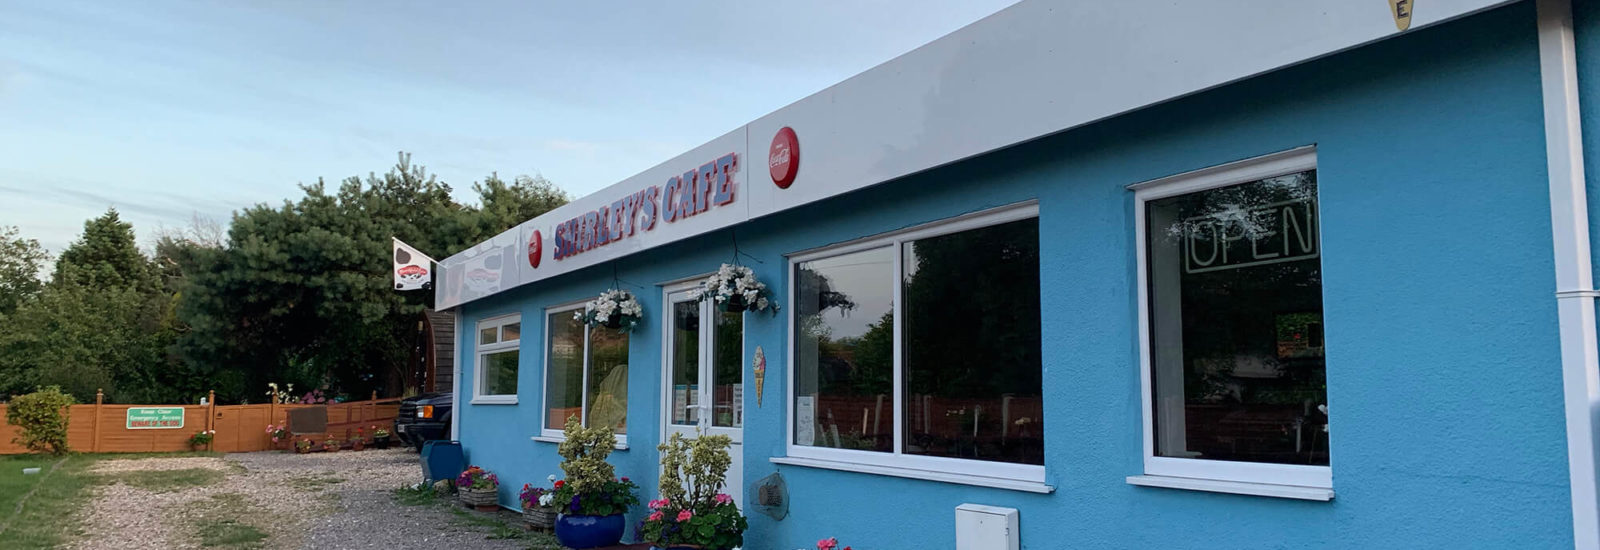 Image of Shirley's Cafe